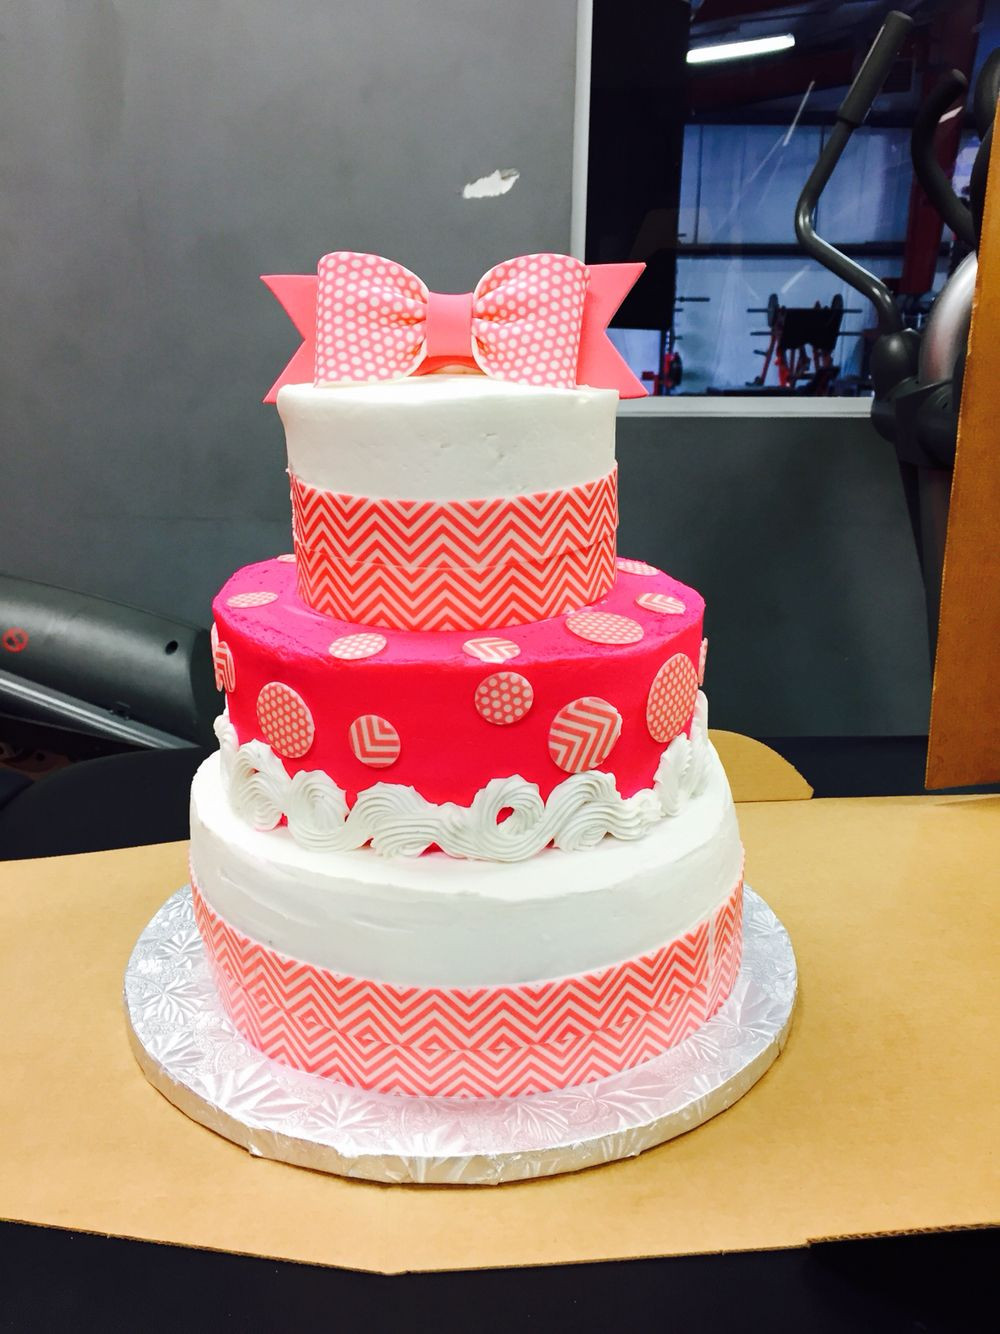 Best ideas about Birthday Cake For 12 Years Old Girl . Save or Pin The cutest cake for a 12 year old girl ever Now.